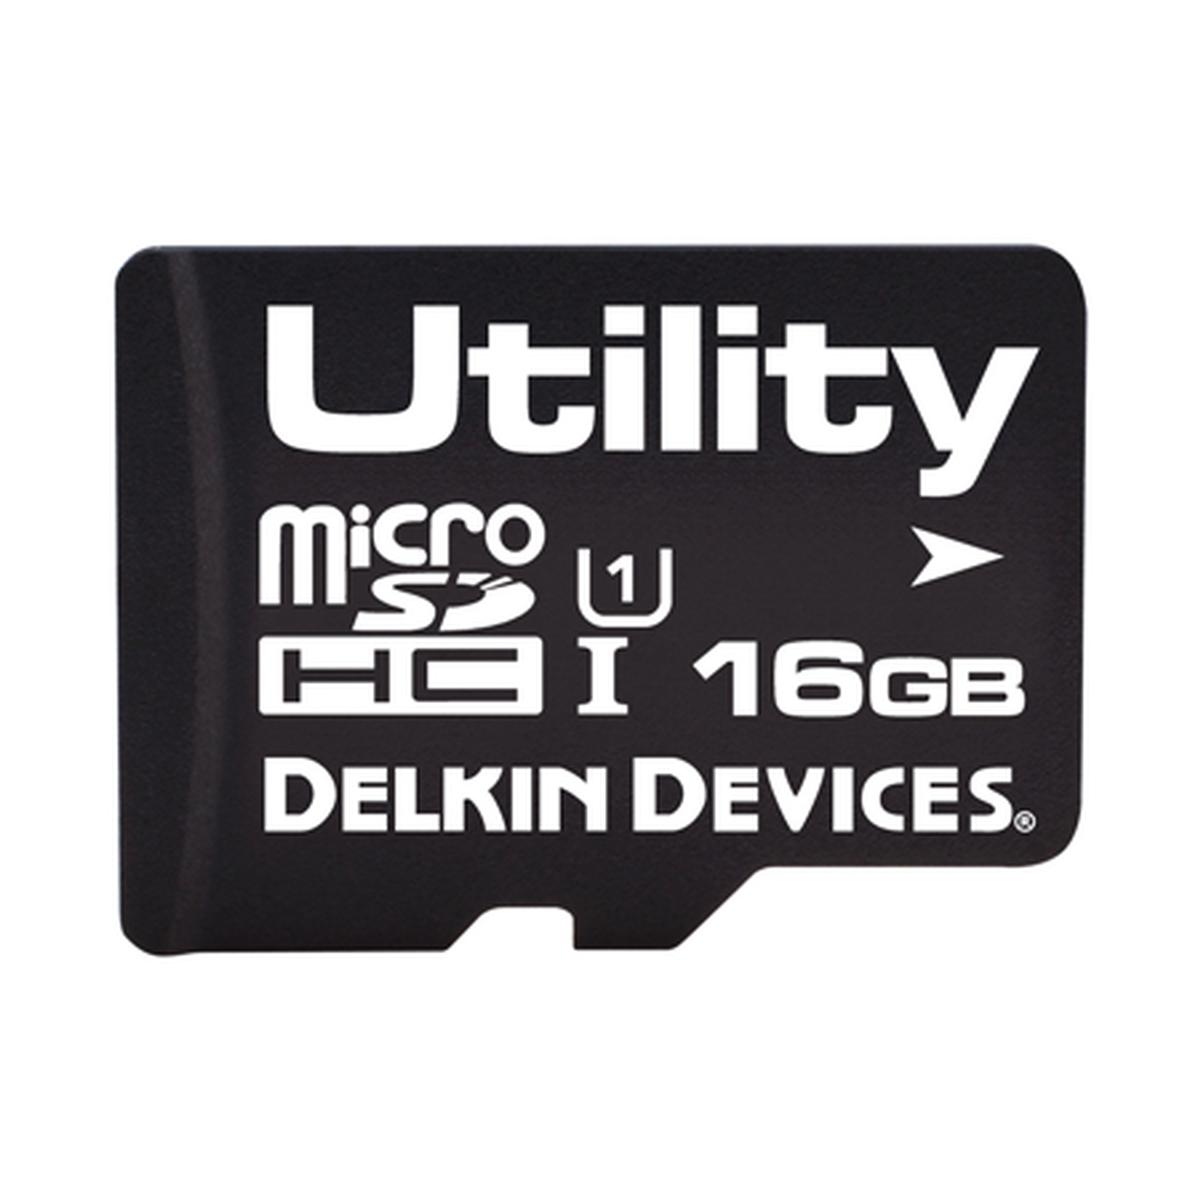 16GB Utility microSD (MLC) with SMART SDアダプタなし